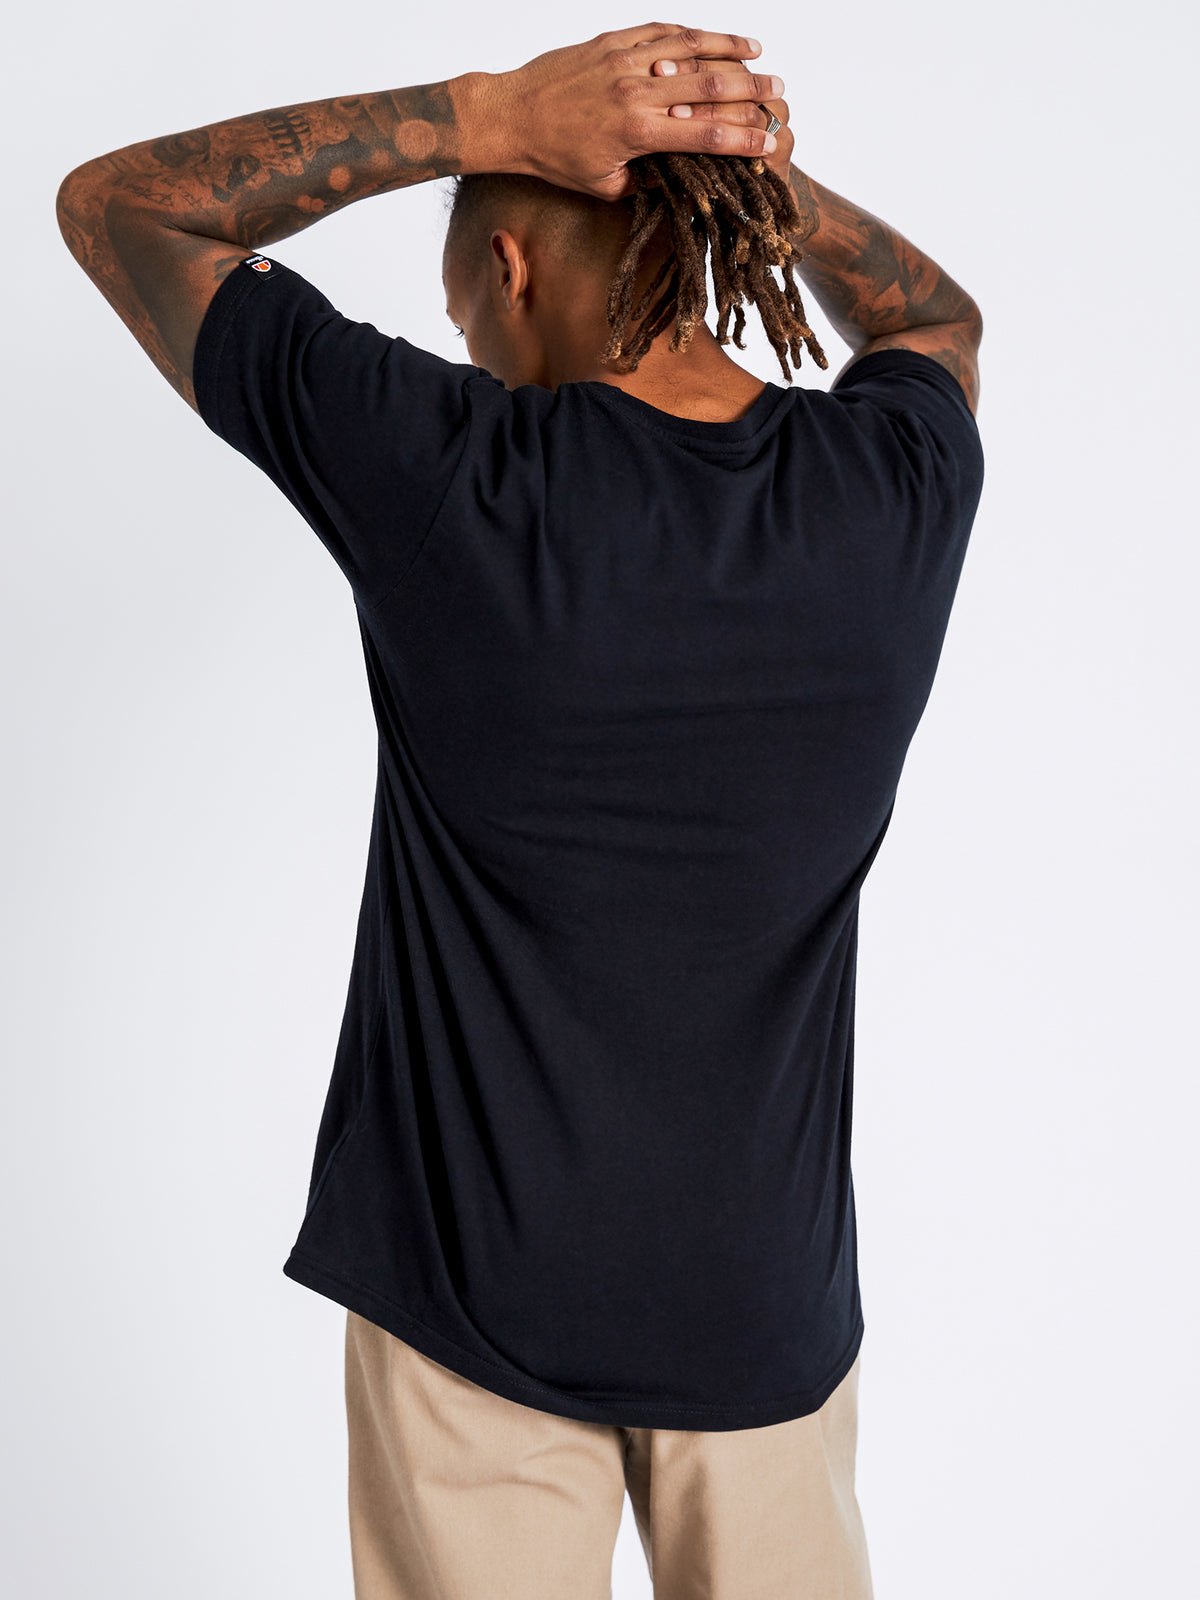 Canaletto T-Shirt in Anthracite Black